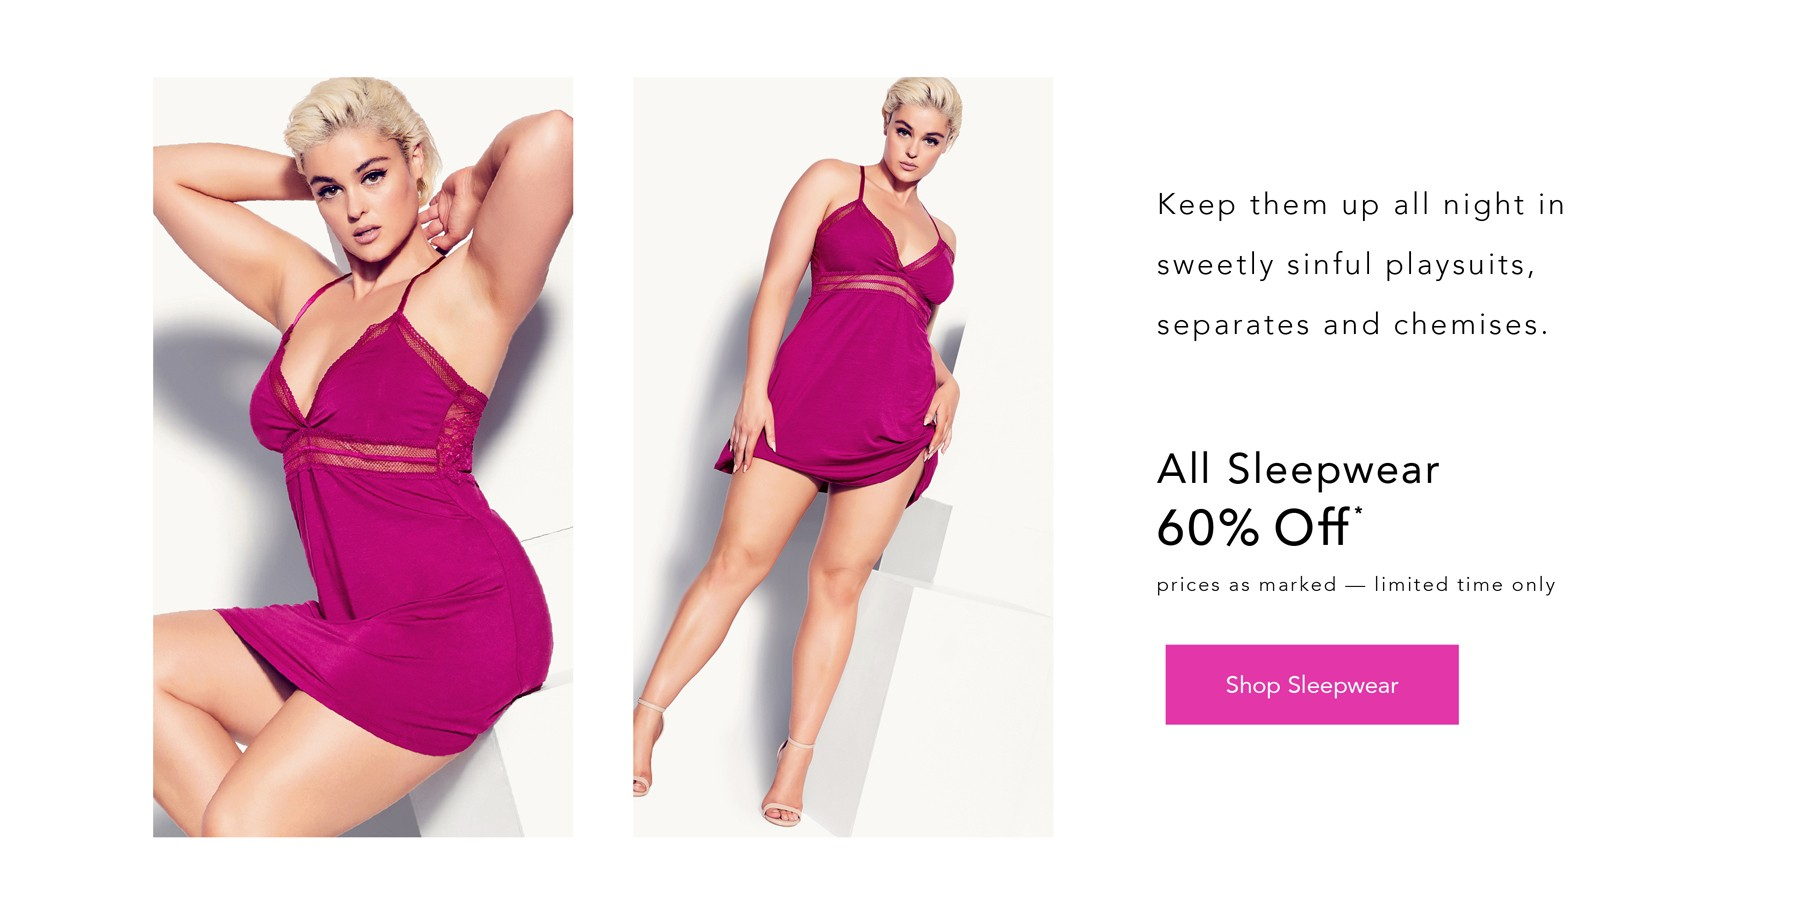 Keep them up all night in sweetly sinful playsuits, separates and chemises - ALL SLEEPWEAR 60% OFF* - *Prices As Marked, Limited Time Only - SHOP SLEEPWEAR